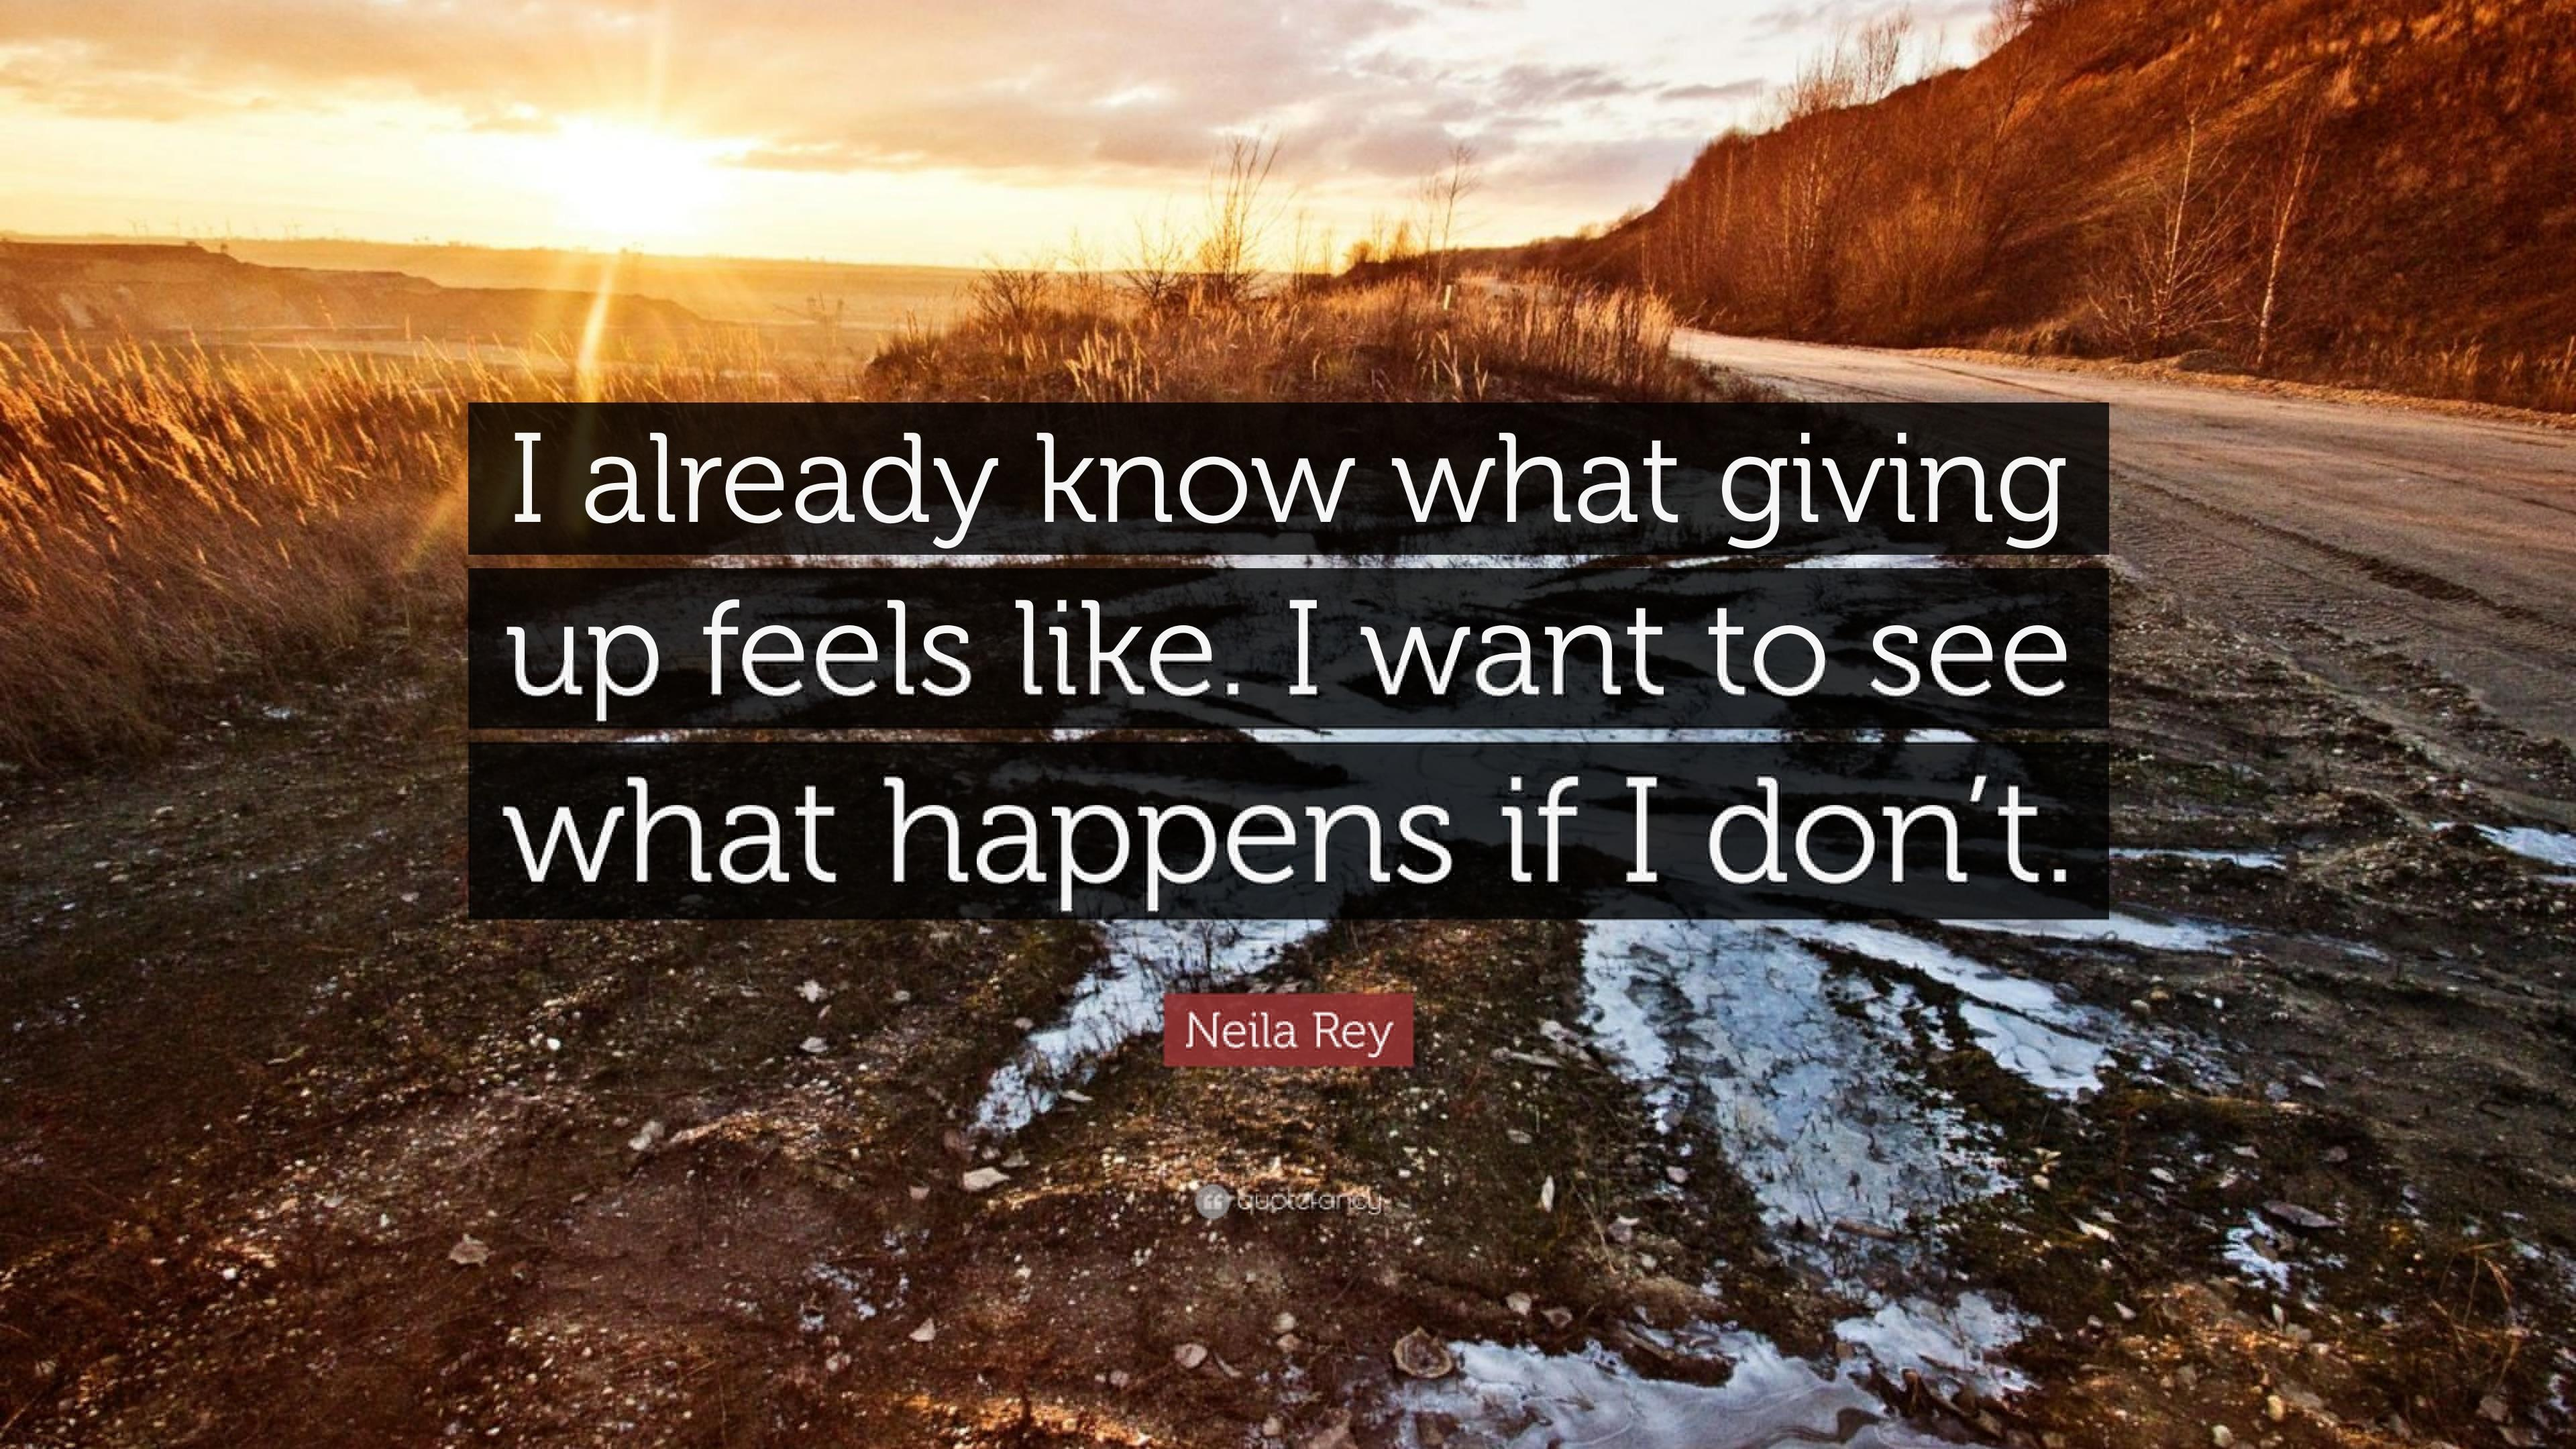 [Image] I want to see what happens